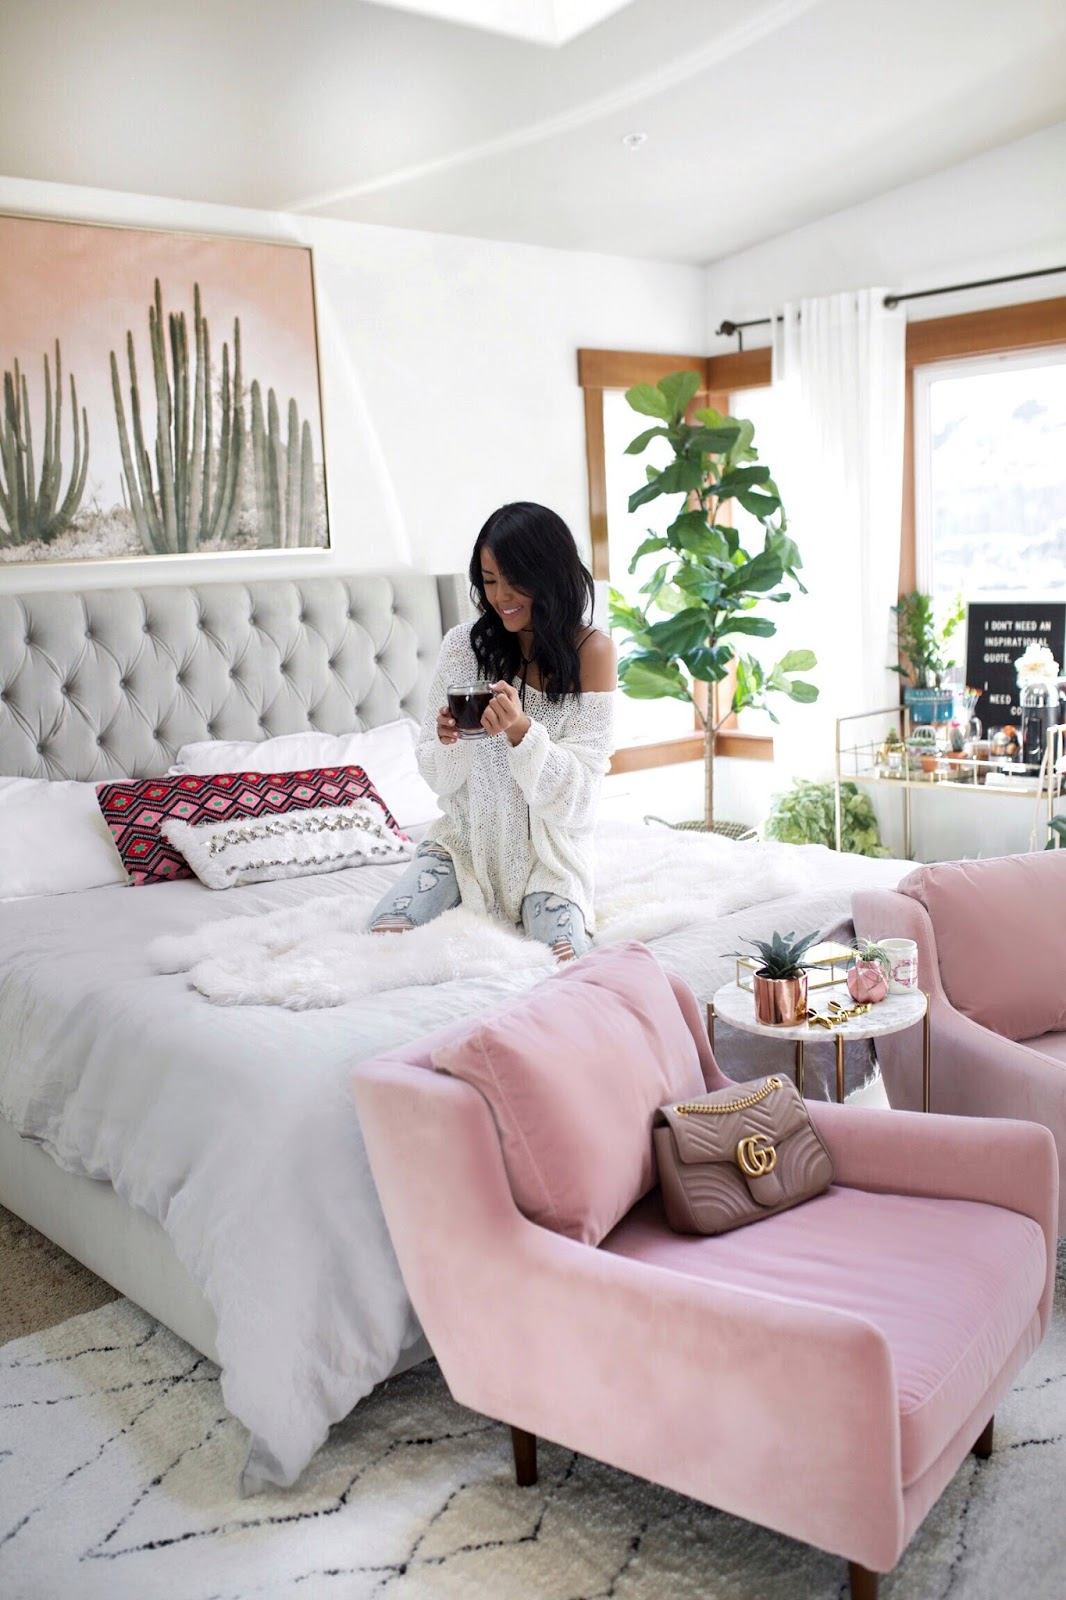 Gypsy Tan Blogger Bedroom Inspiration